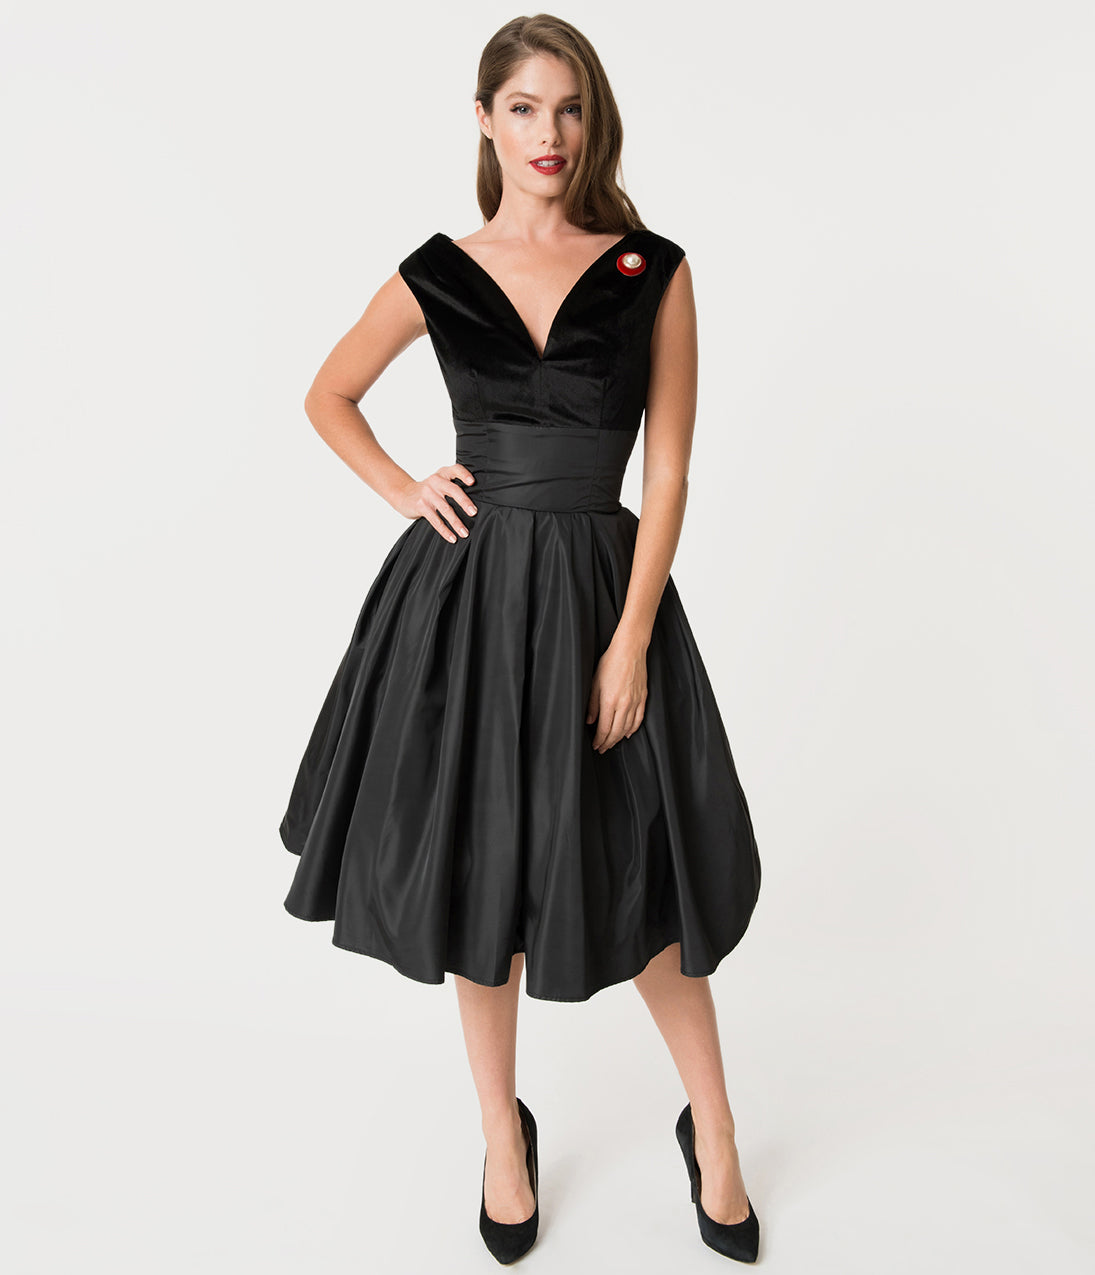 1950s Swing Dresses | 50s Swing Dress Unique Vintage 1950S Style Black Velvet  Taffeta Evie Swing Dress $98.00 AT vintagedancer.com